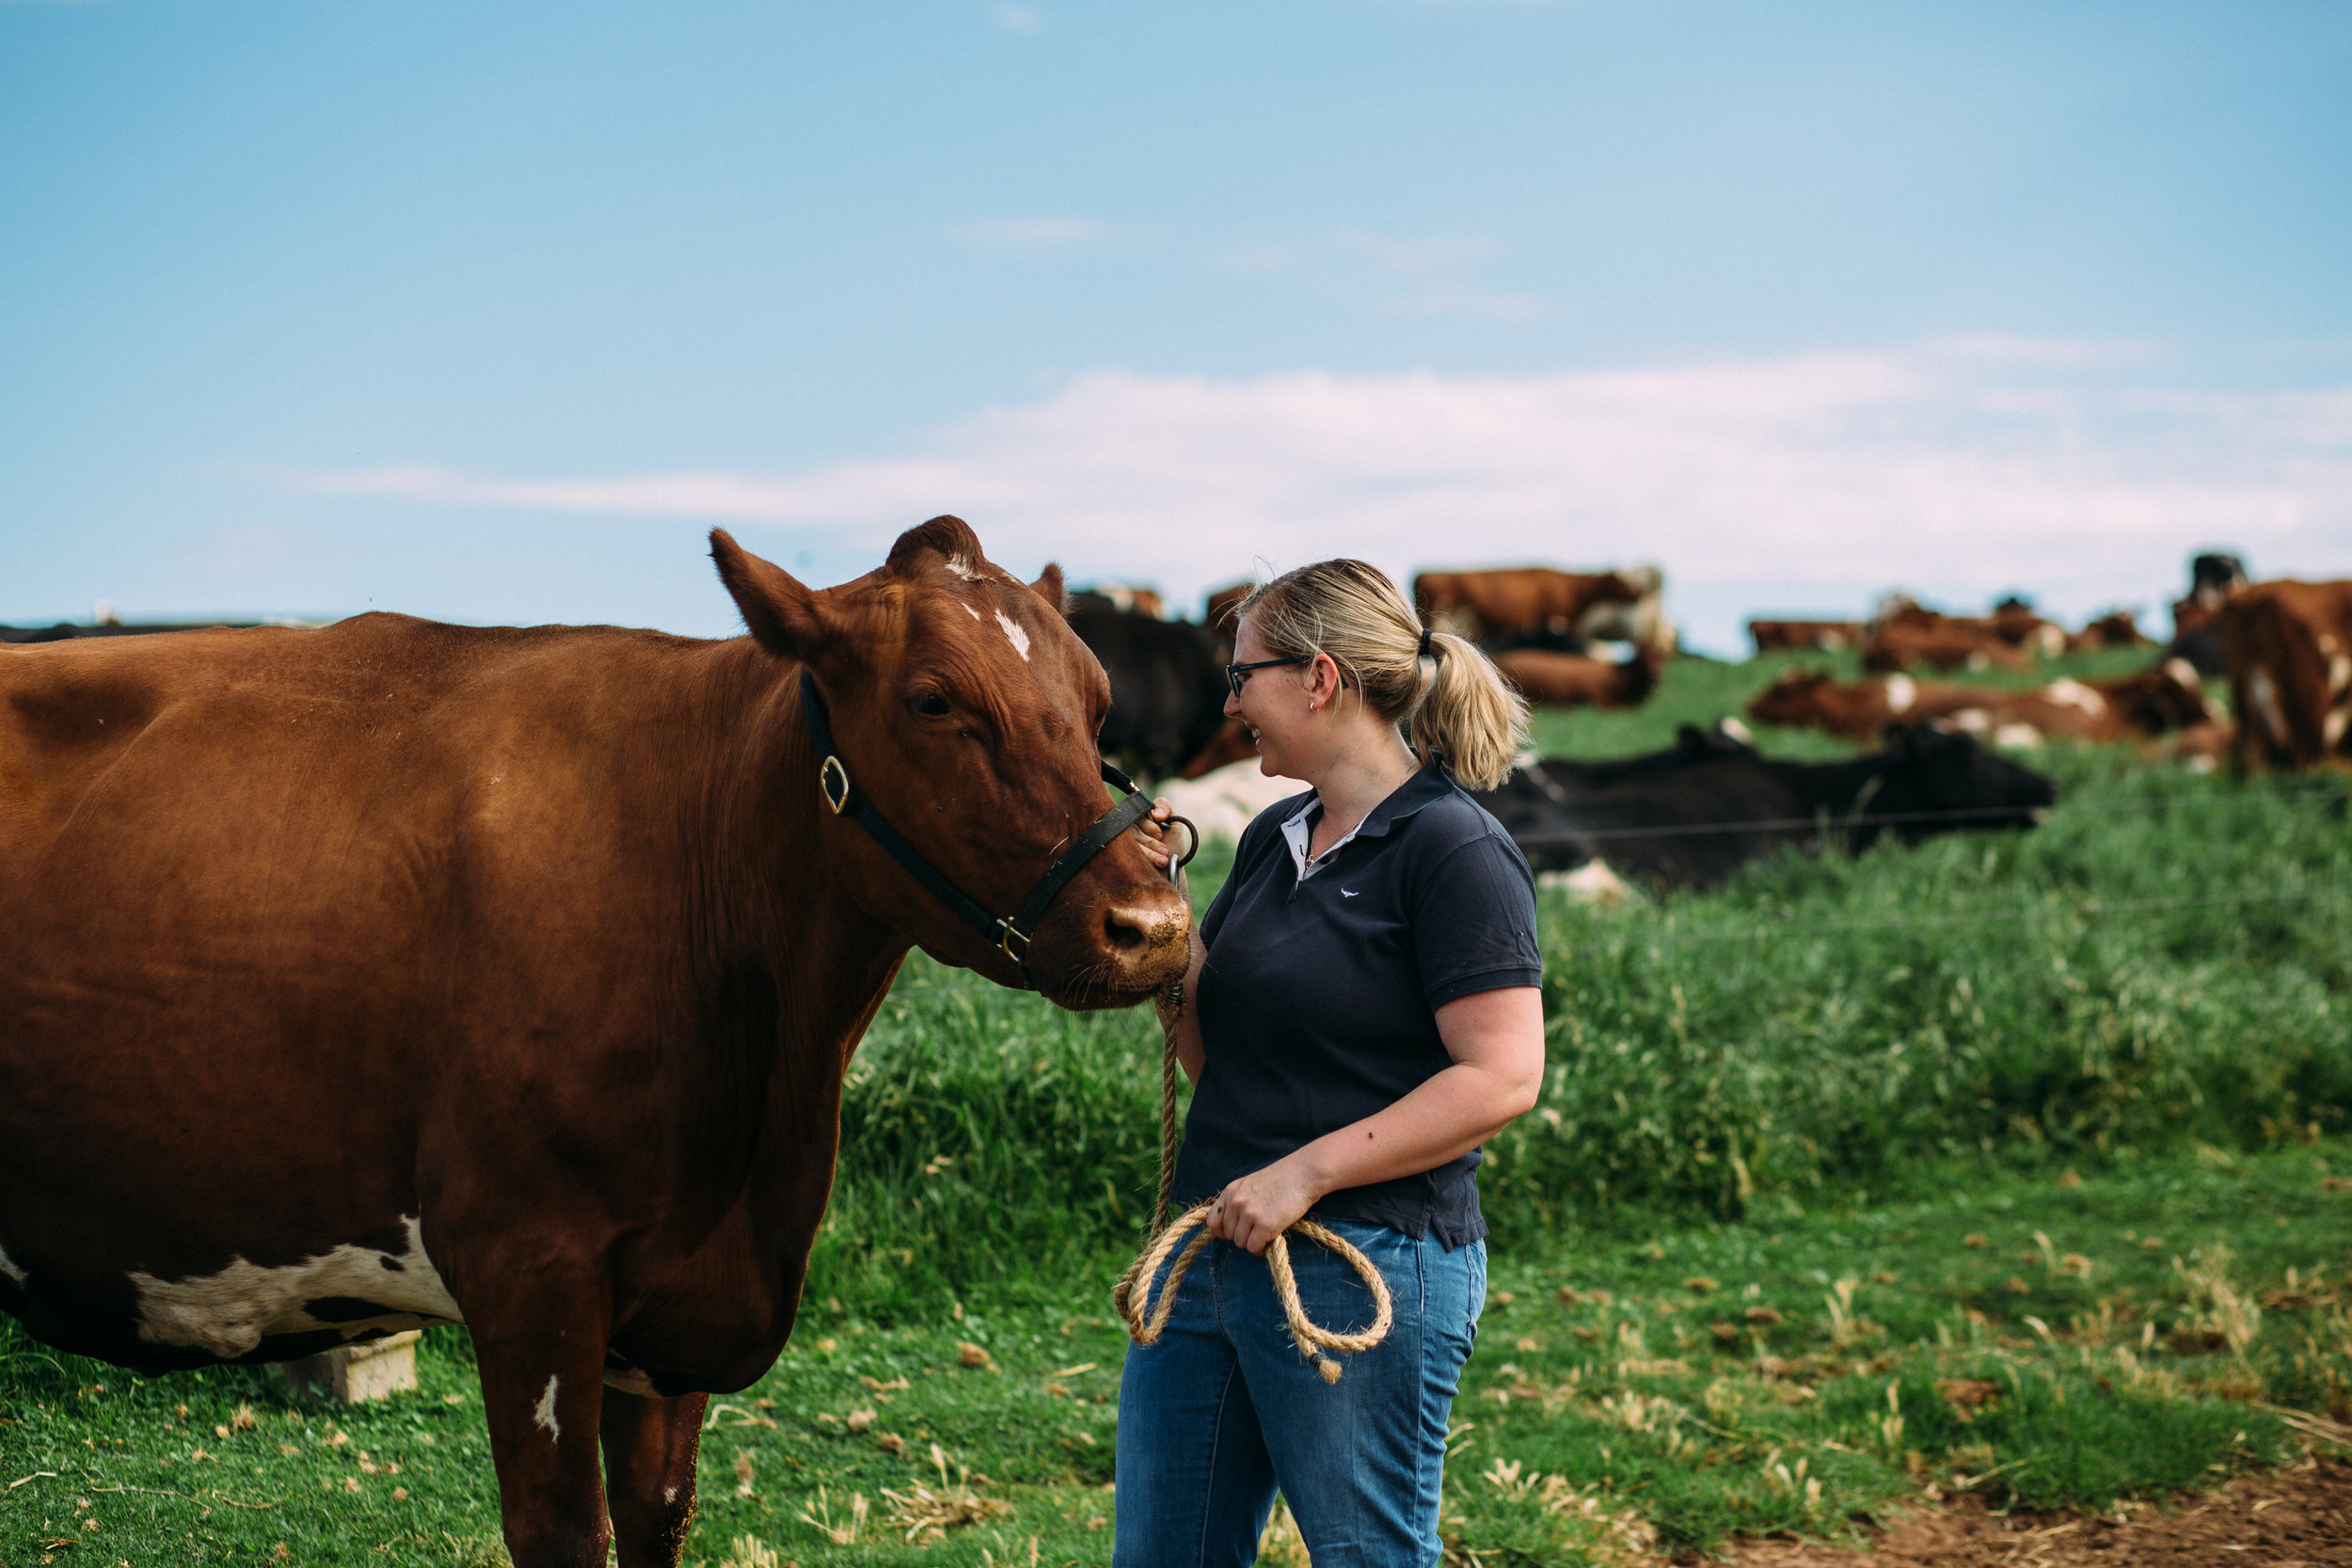 Emily with her favourite cow, Begonia, photographed by Catherine Forge, Murray Bridge, Source: Museums Victoria: https://collections.museumvictoria.com.au/items/2243769